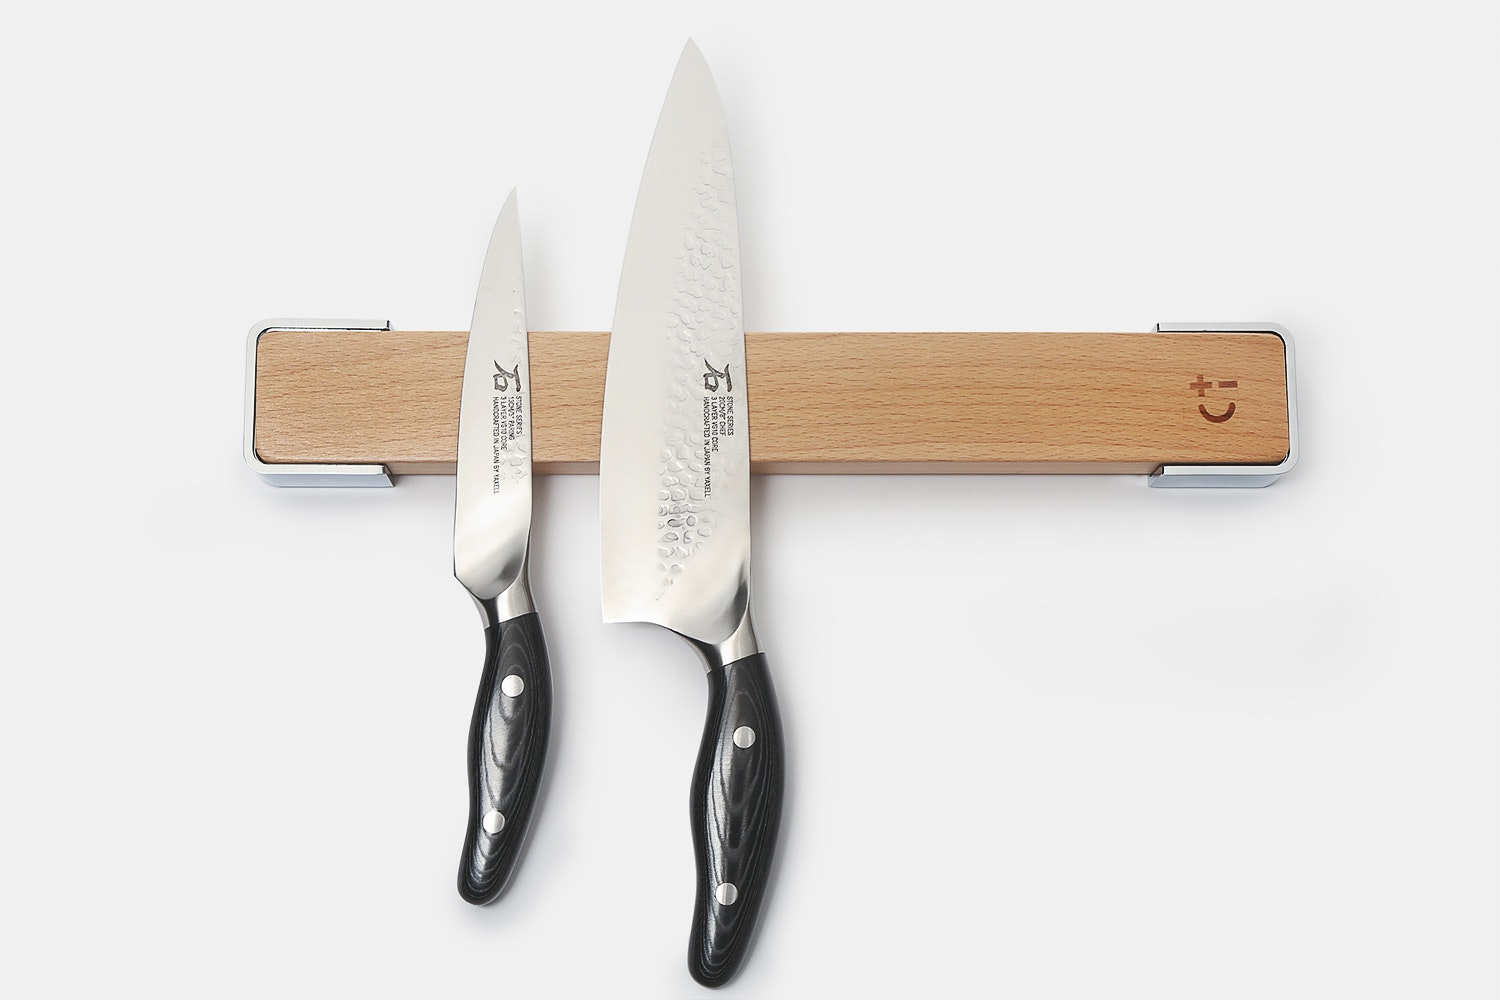 Bisbell Magnetic Knife Holder